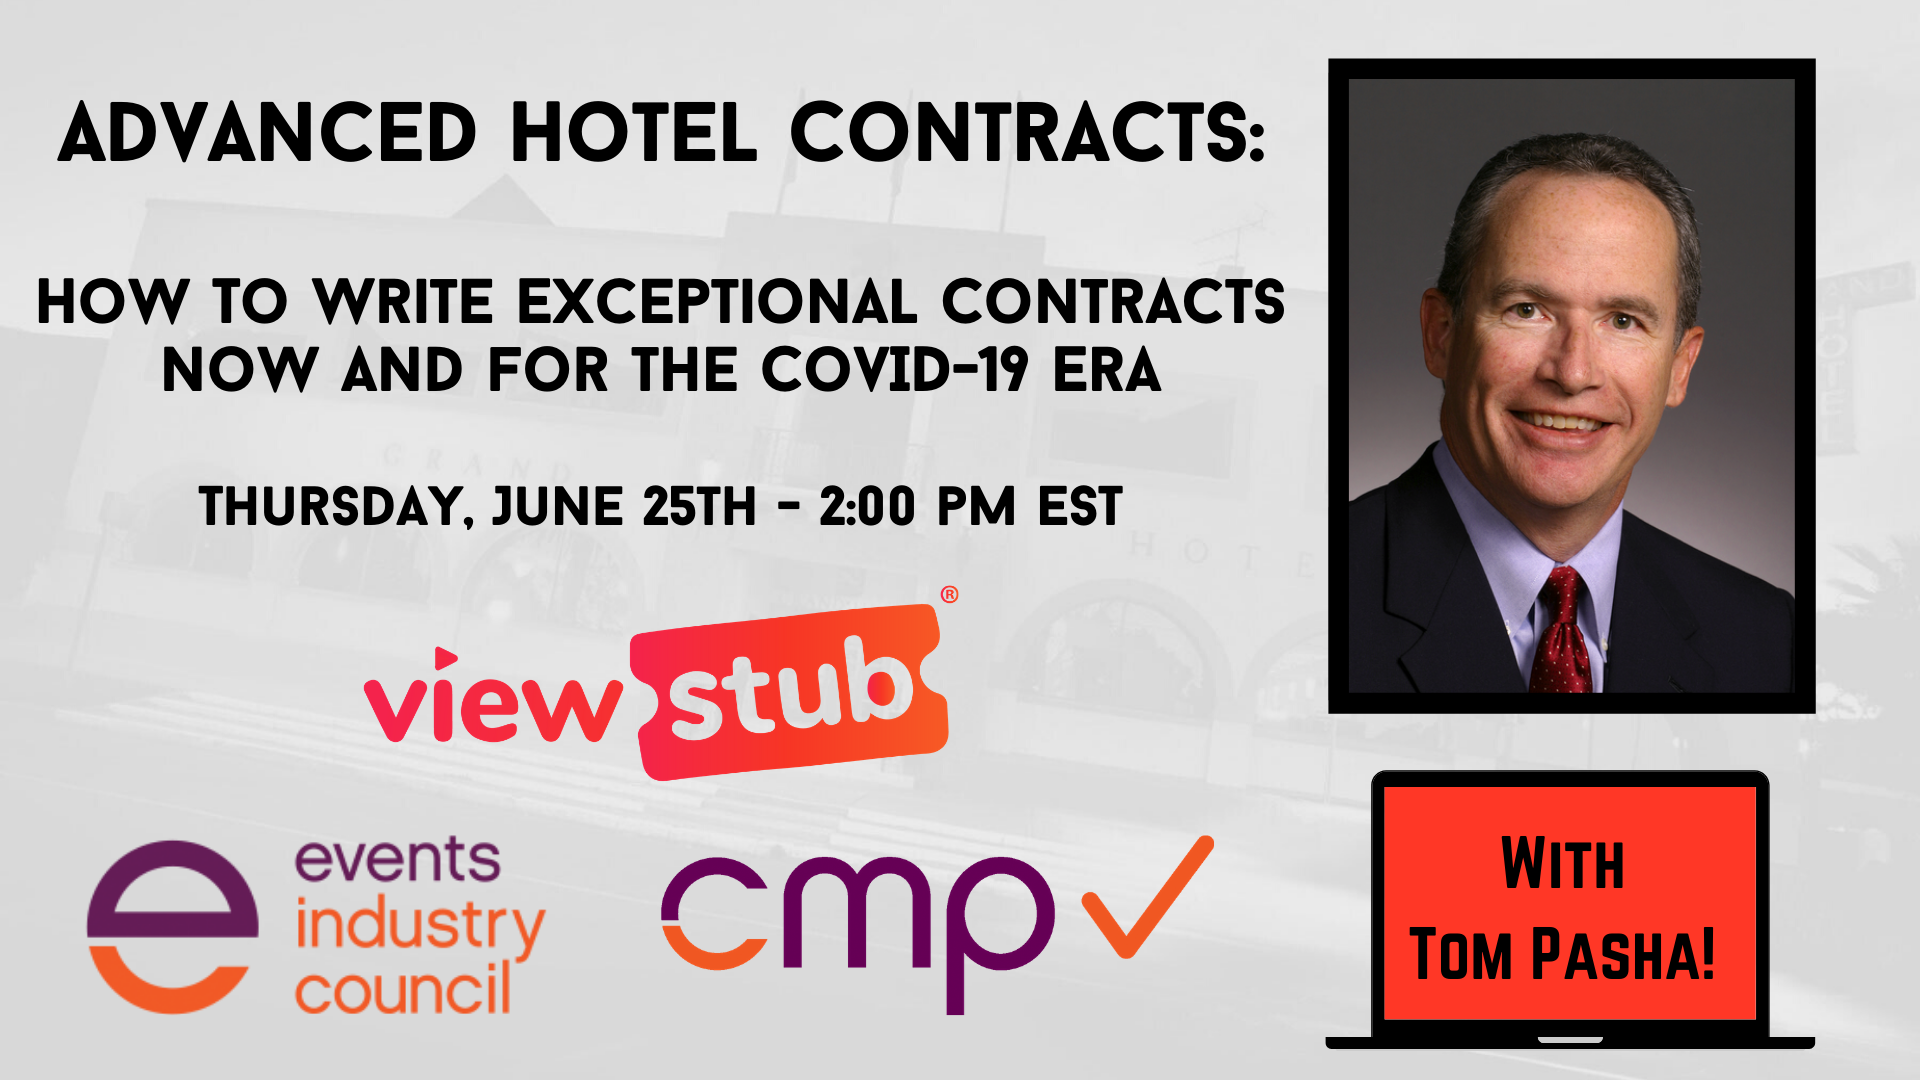 Thumbnail for Advanced Hotel Contracts NOW and for the COVID 19 Era on ViewStub